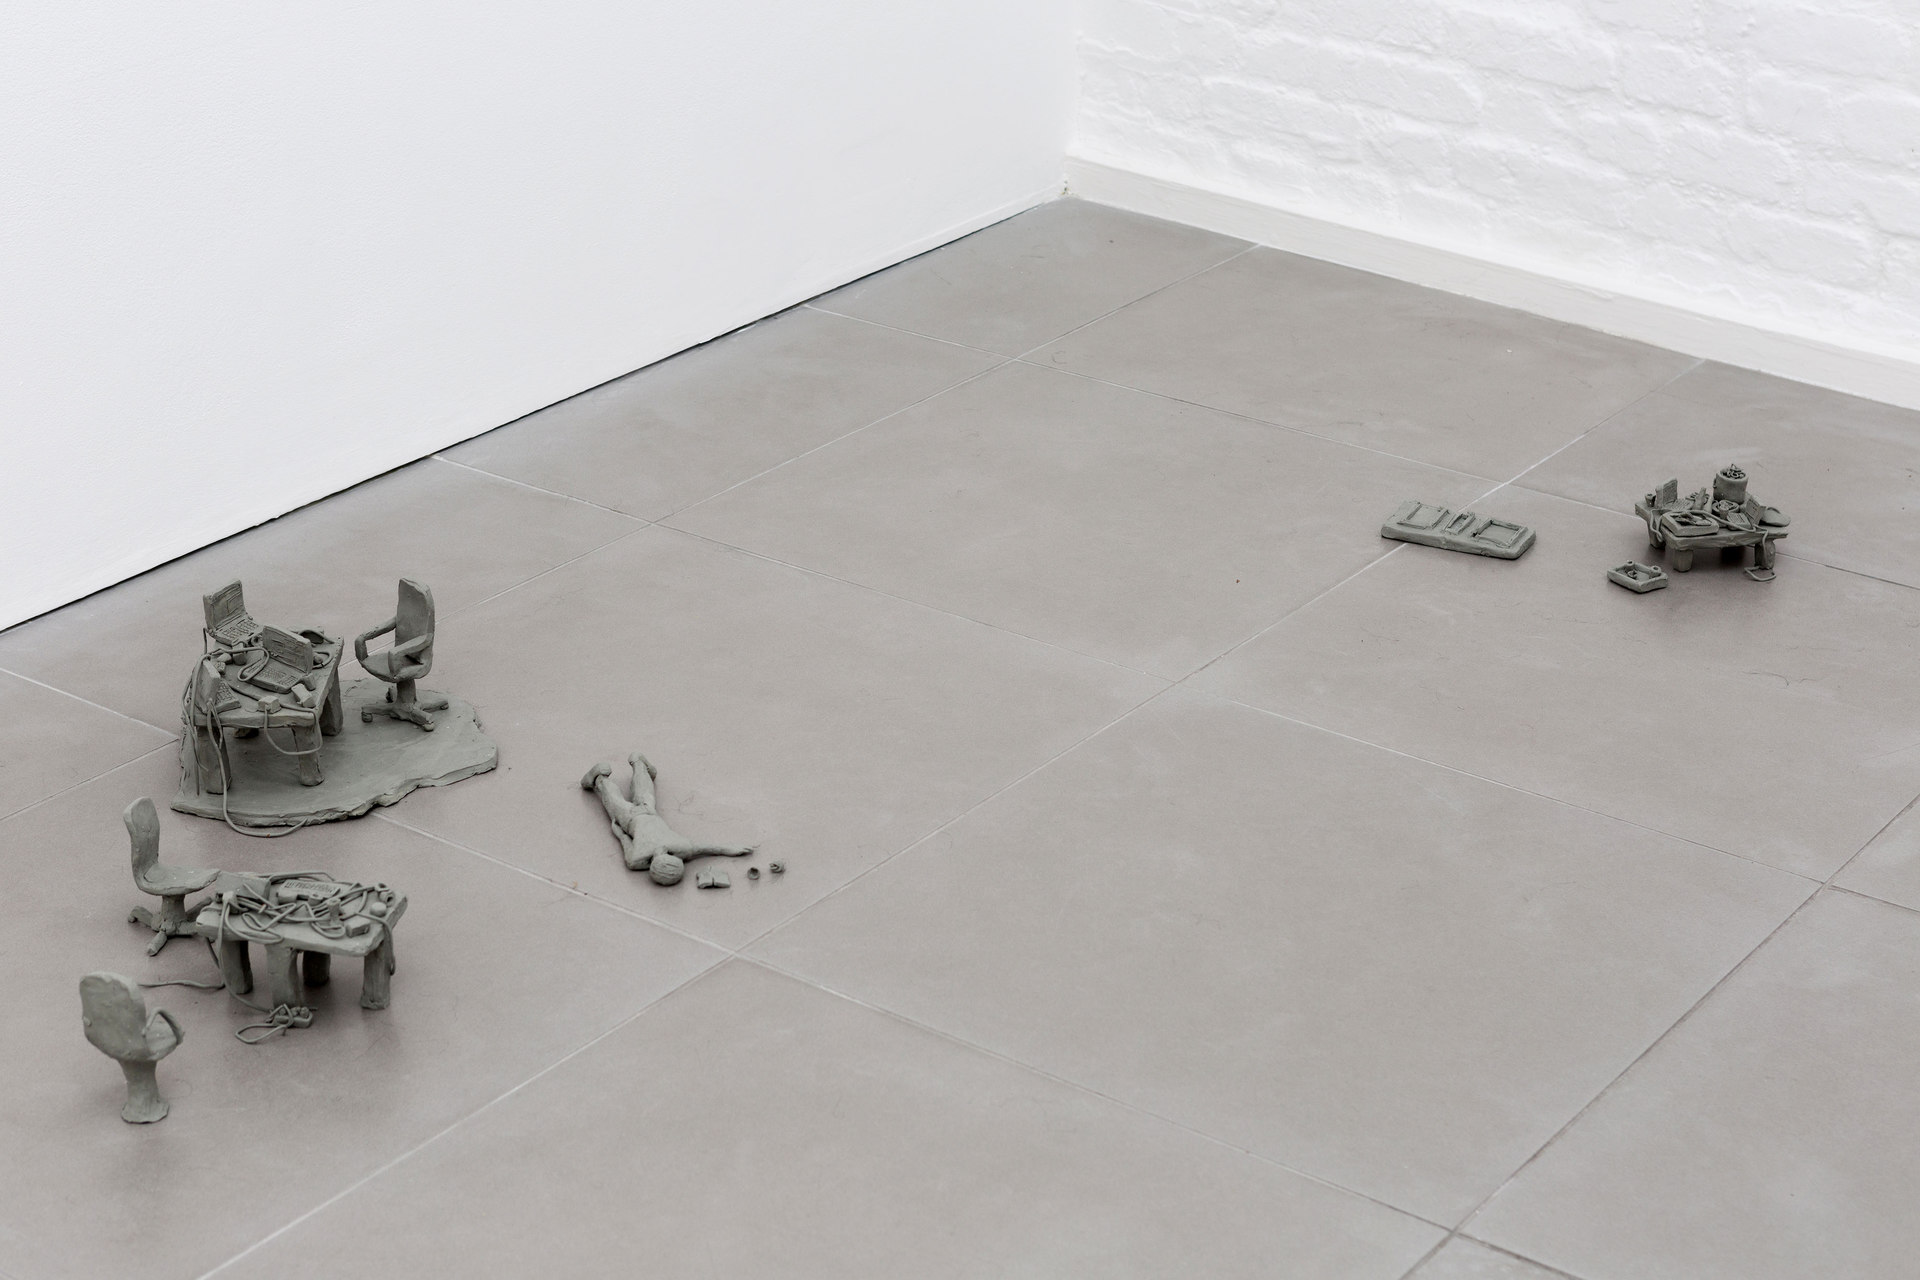 Mélanie Matranga, handmade situation, 2015, Non drying Paste, dimensions variable, Cell Project Space